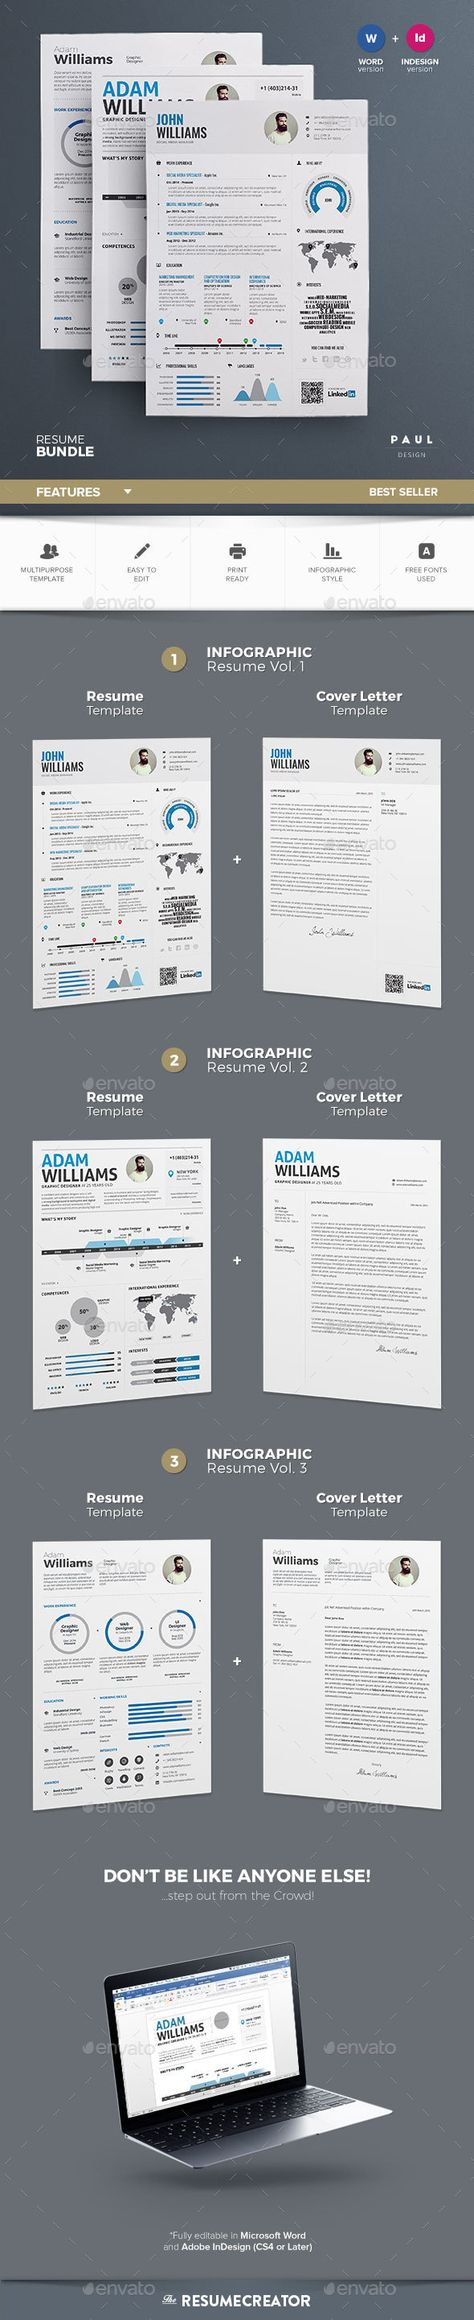 infographic resume bundle clean resume bundle cover letter creative template curriculum vitae cv 12